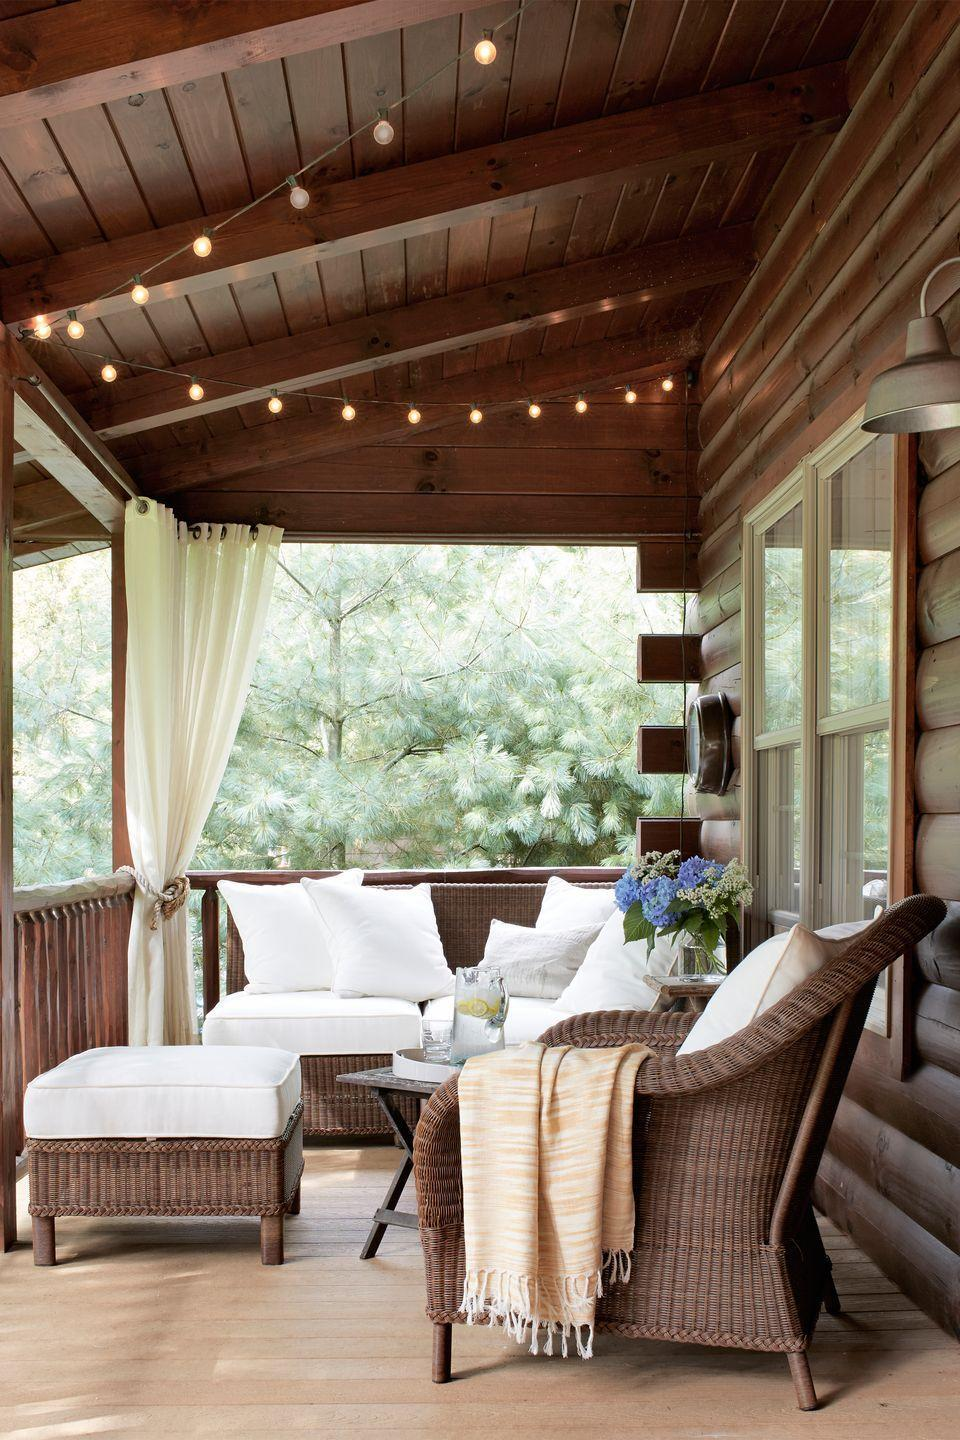 """<p> String lights are an easy, affordable way to turn your porch into an enchanting oasis. Let them drape from the ceiling or a railing, or hang them from a wall.</p><p><a class=""""link rapid-noclick-resp"""" href=""""https://www.amazon.com/AmazonBasics-Weatherproof-Outdoor-String-Lights/dp/B073WFL5B7/?tag=syn-yahoo-20&ascsubtag=%5Bartid%7C10050.g.3404%5Bsrc%7Cyahoo-us"""" rel=""""nofollow noopener"""" target=""""_blank"""" data-ylk=""""slk:SHOP STRING LIGHTS"""">SHOP STRING LIGHTS</a></p>"""